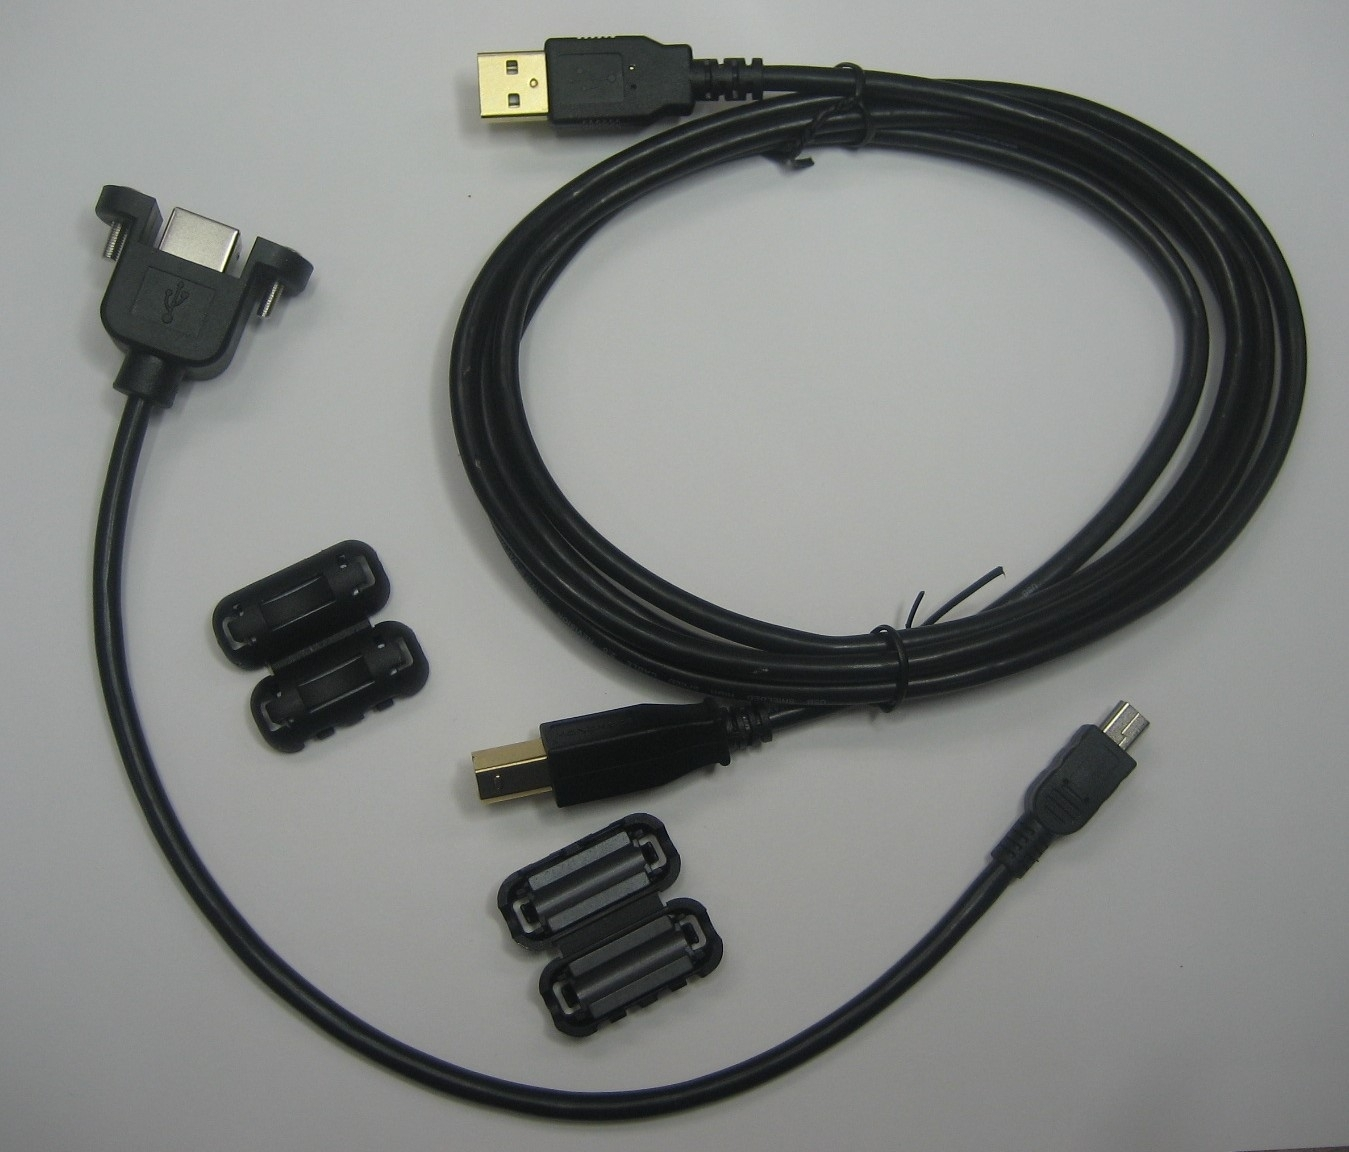 USB 2.0 Mini-B to Std-B Bulkhead Cable Kit